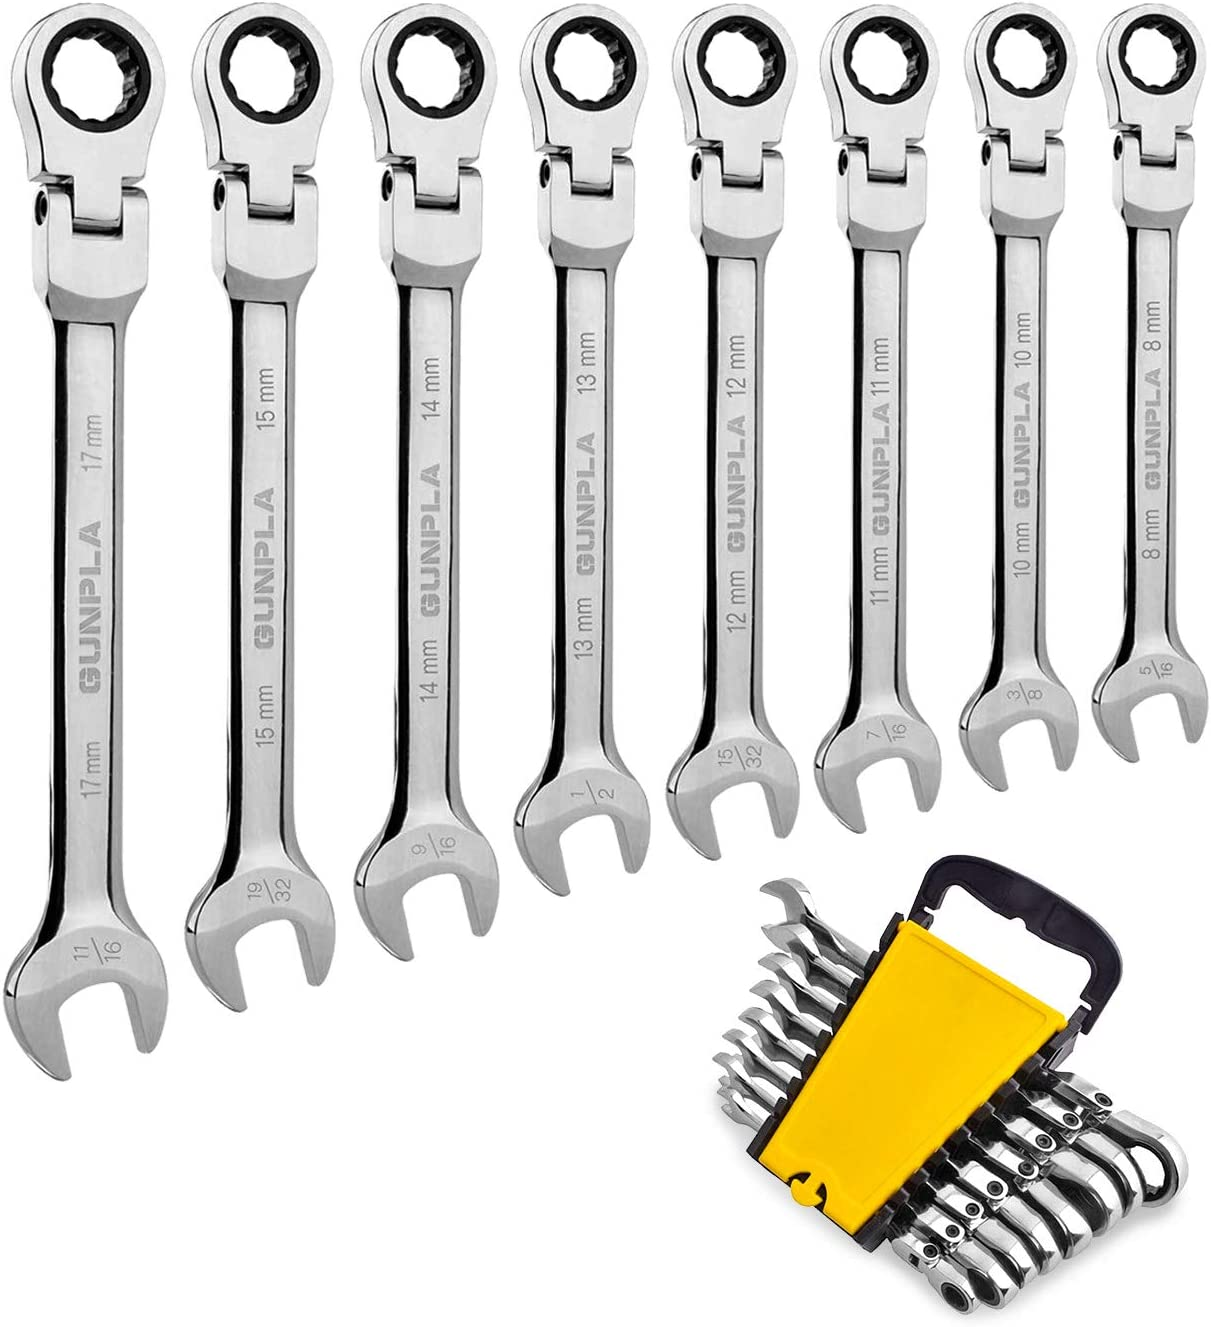 Gunpla 8 Pieces Flexible Head Combination Ratcheting Wrench Spanner Set